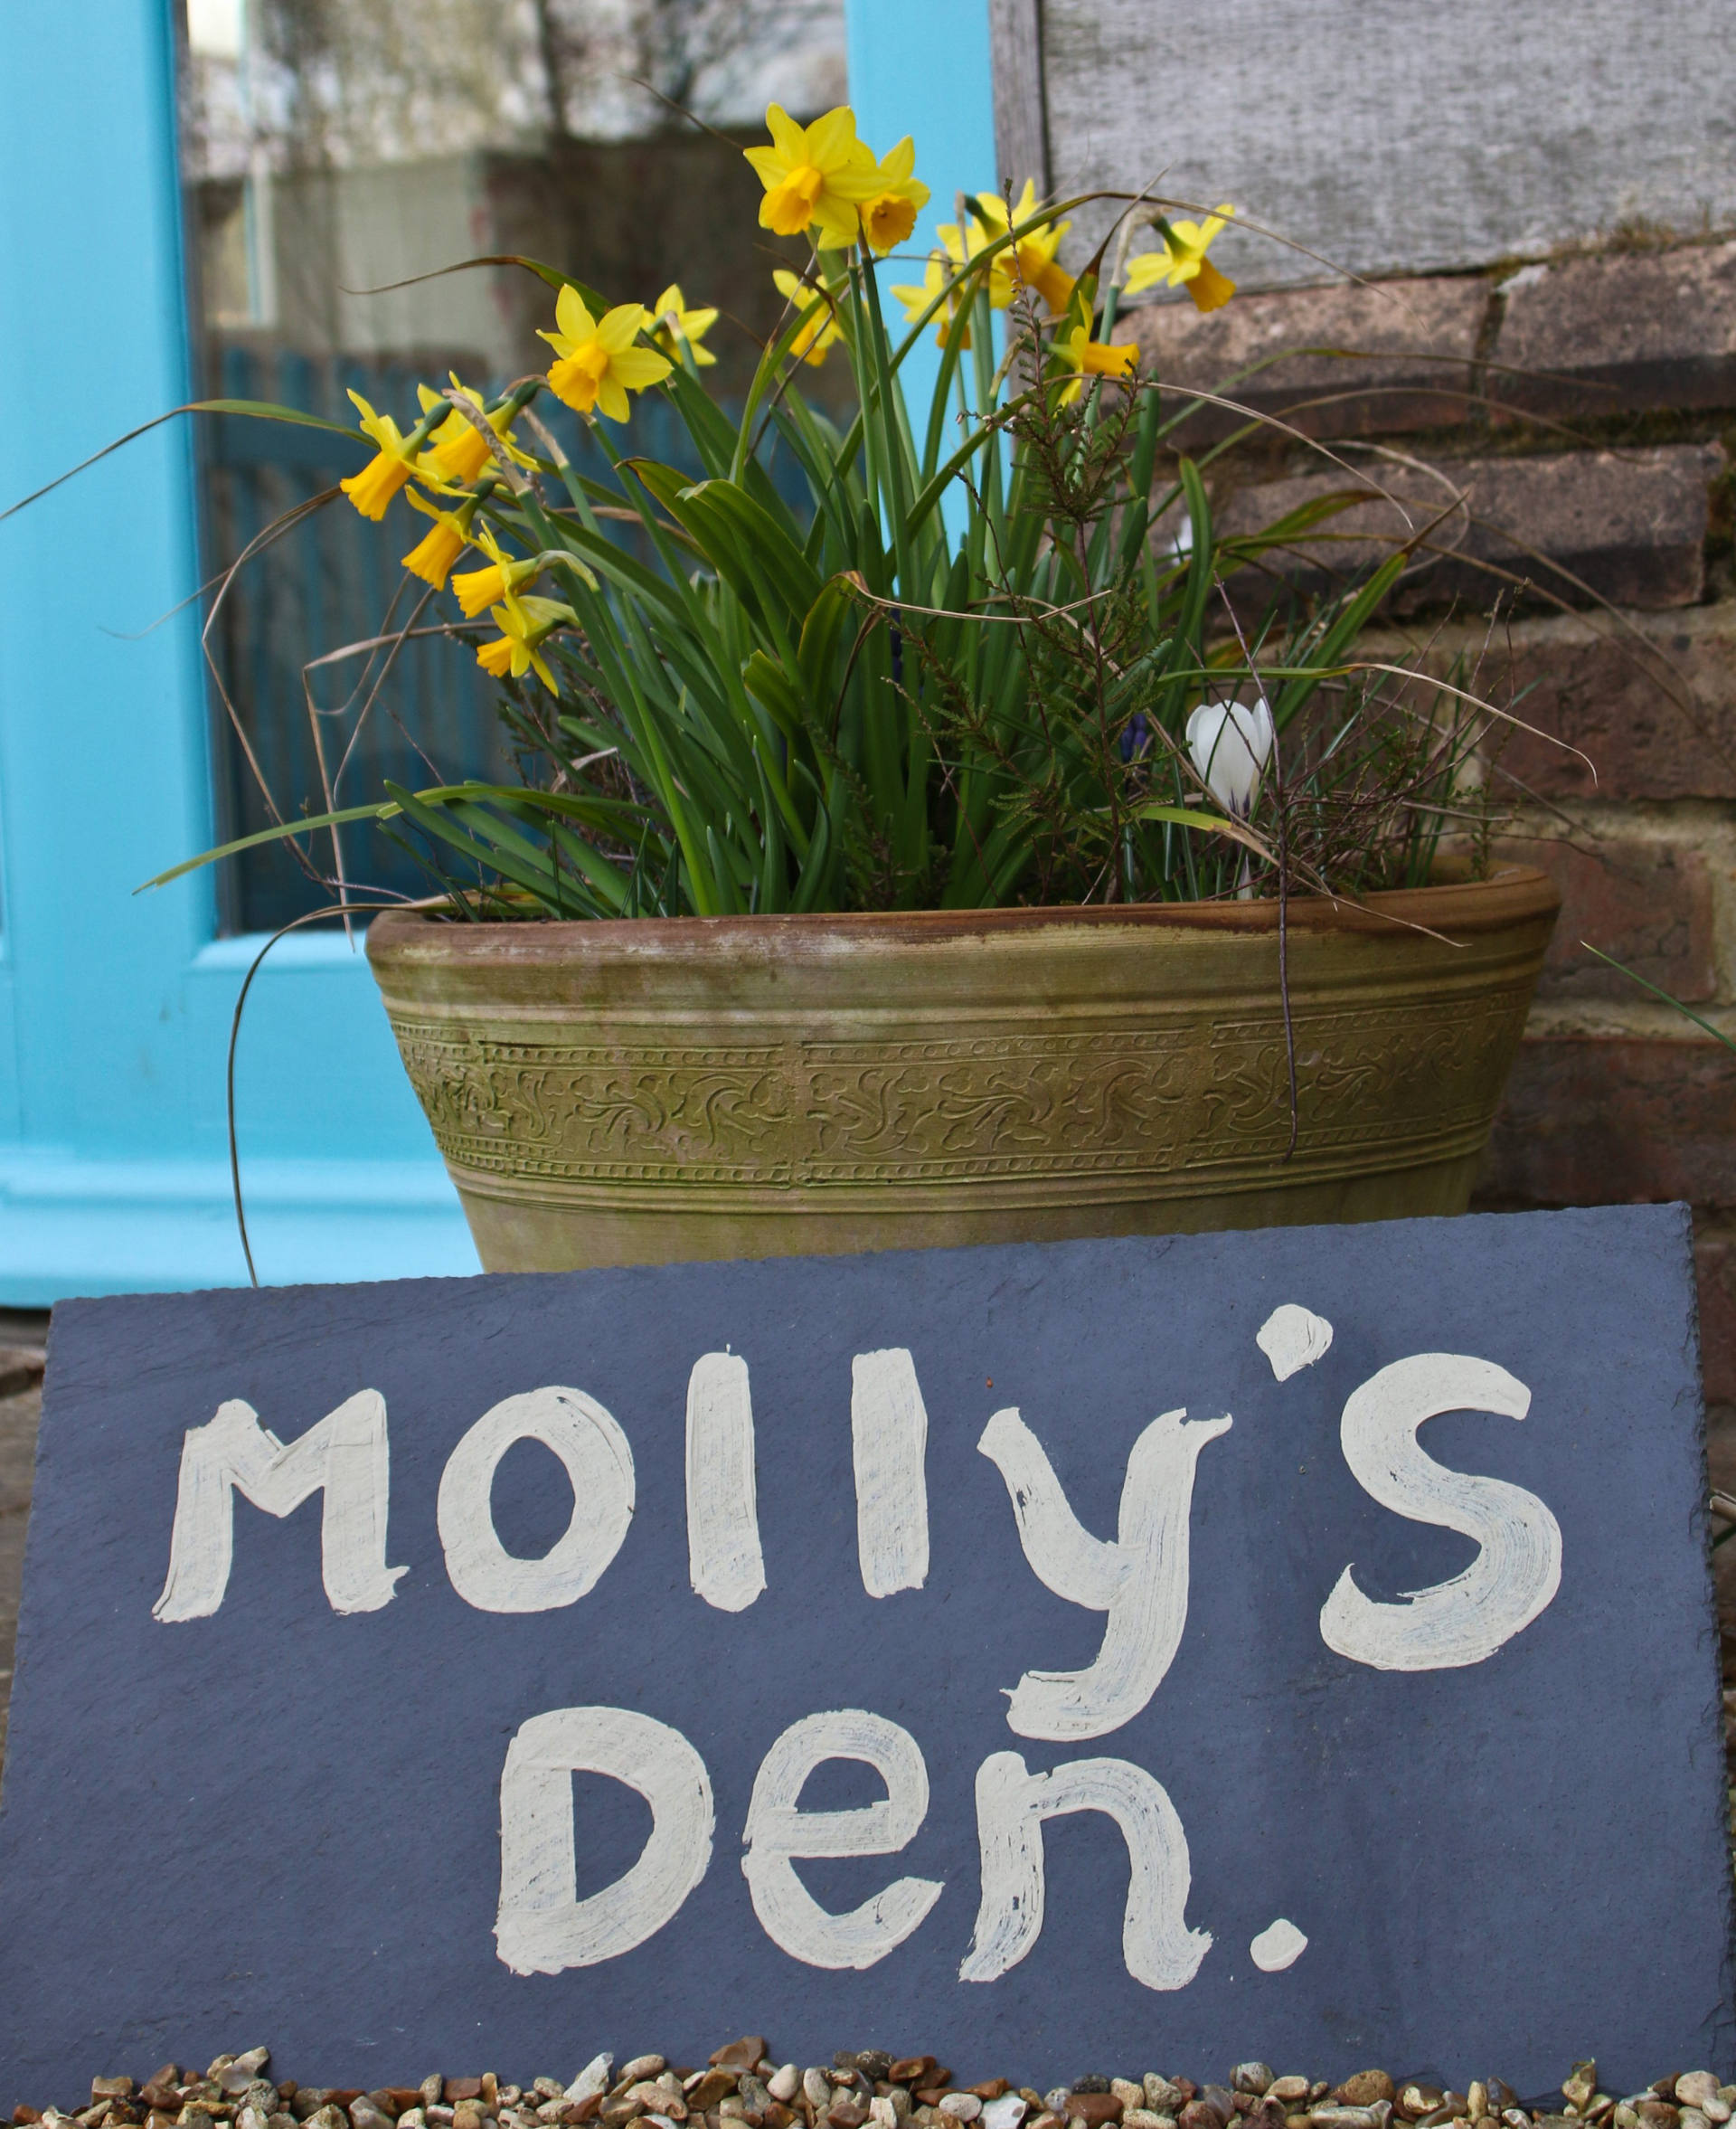 Holiday Cottage for two, Molly's Den.